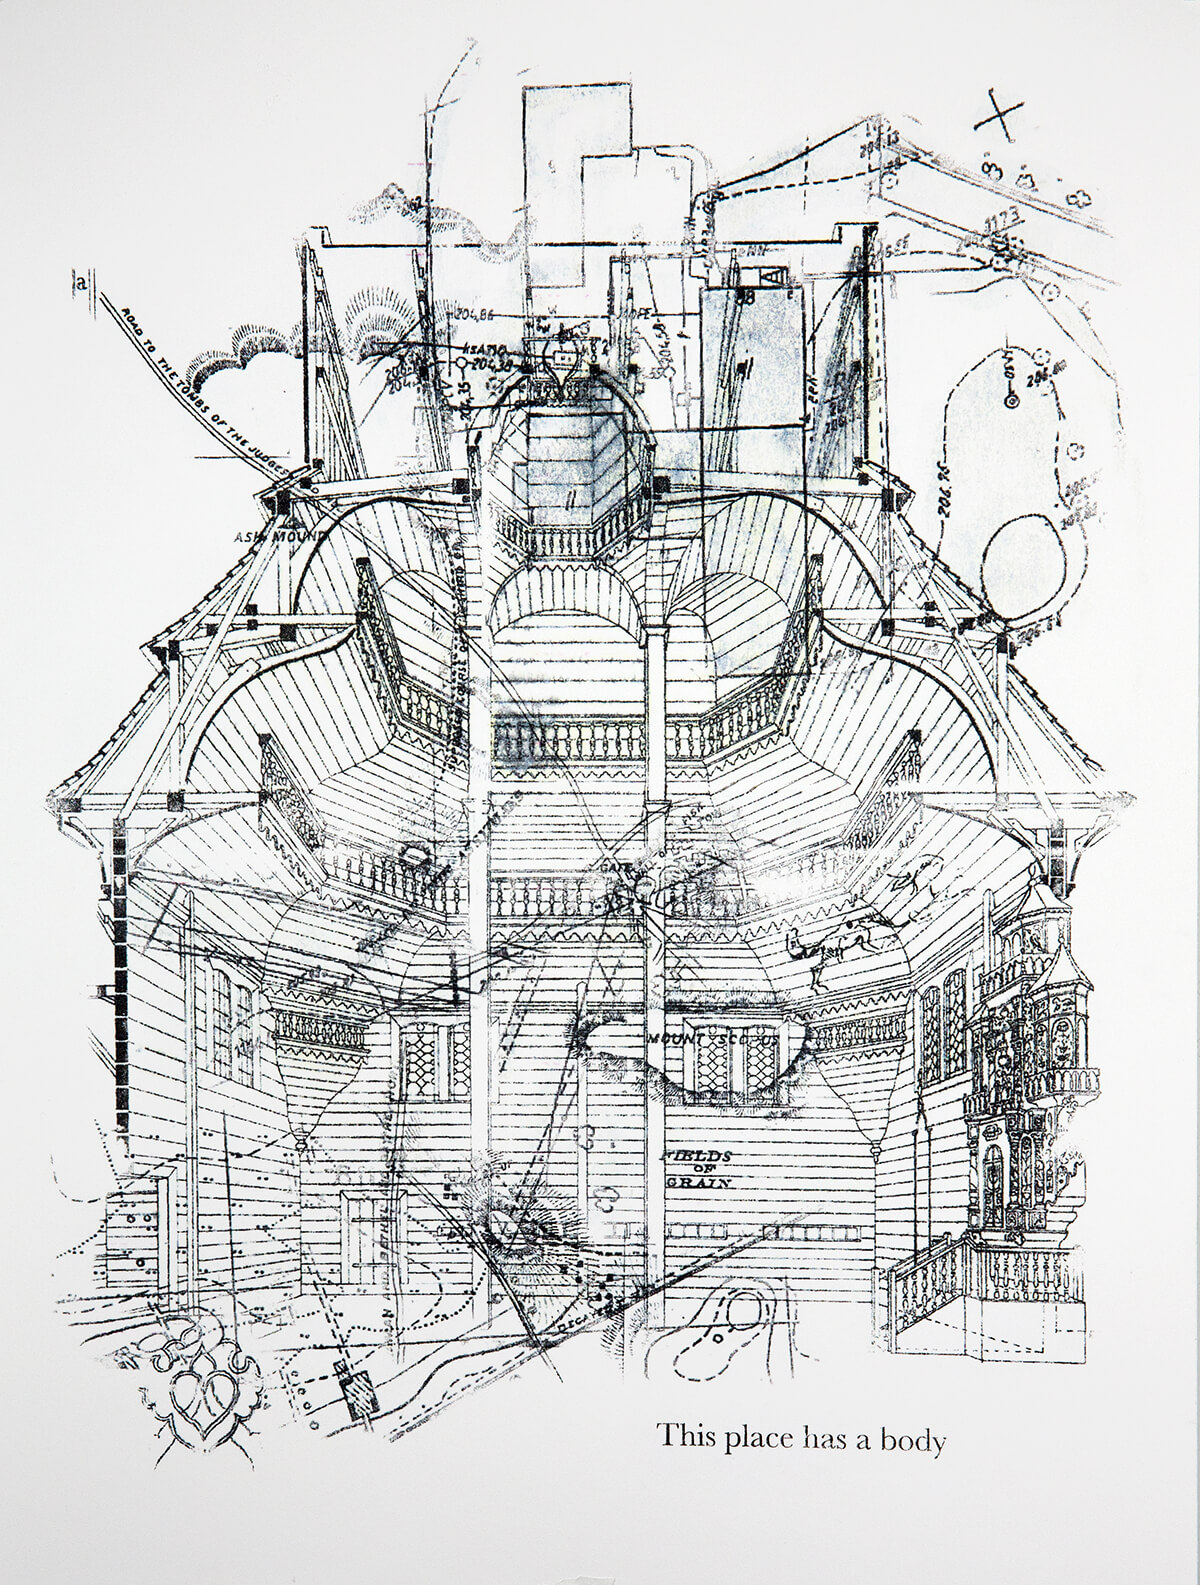 """An architectural drawing of a turretted building is overlayed with some map imagery. On the bottom of the vertically oriented image are the words """"This place has a body"""""""